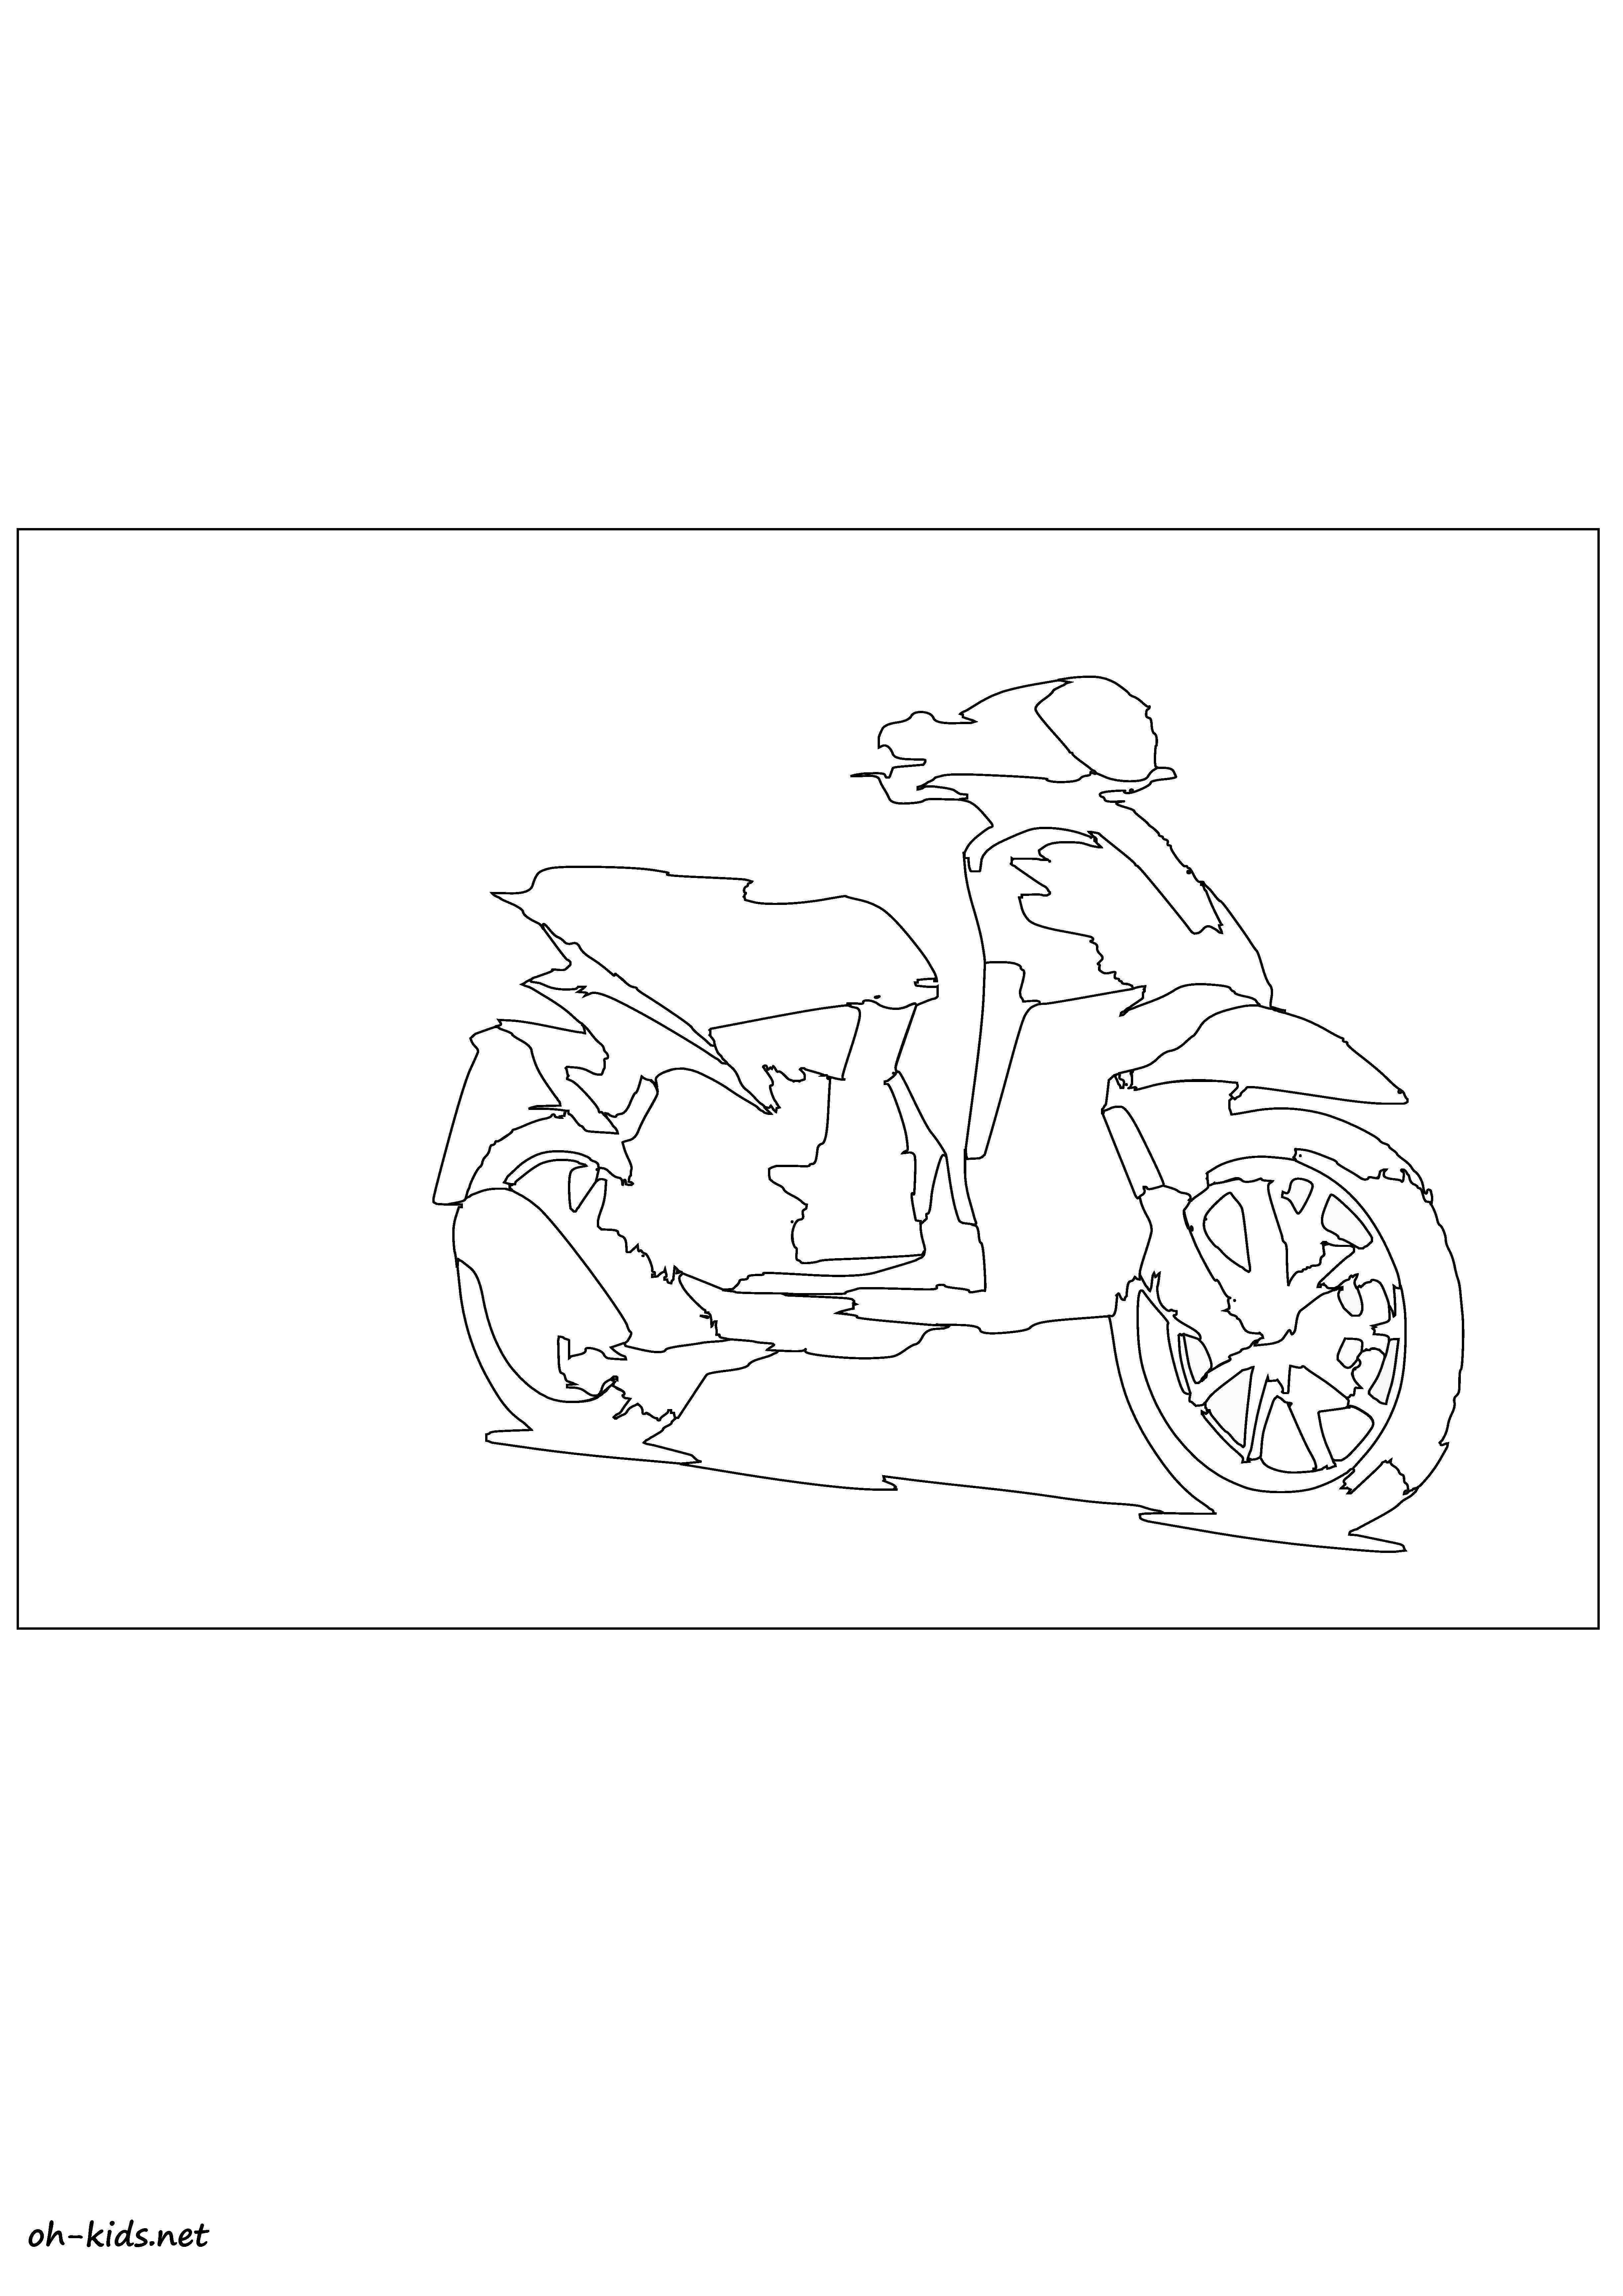 Coloriage Scooter Oh Kids Fr